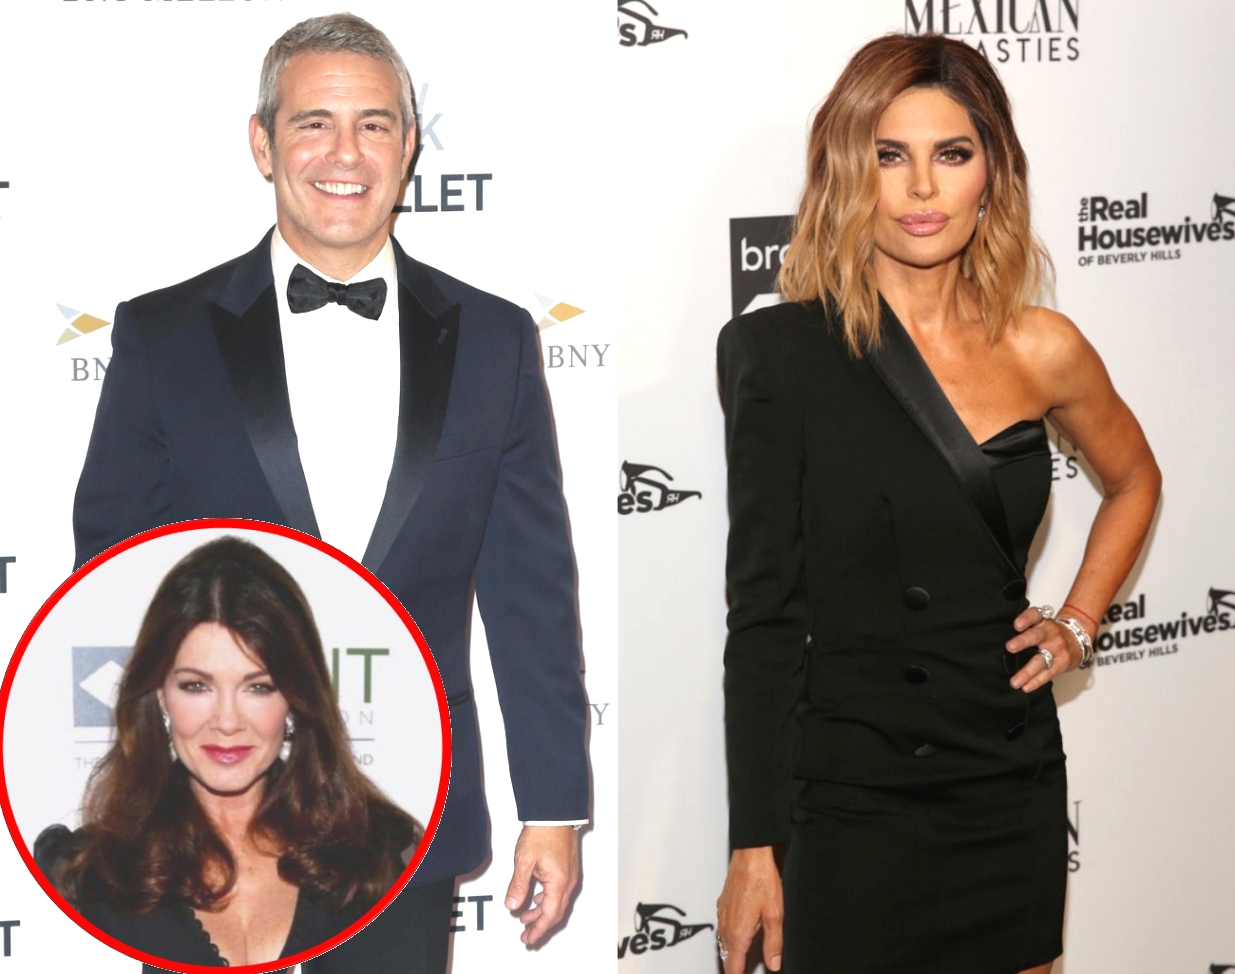 """andy-cohen-explains-himself-after-being-caught-telling-lisa-rinna-to-drag-lisa-vanderpump-on-live-tv"""